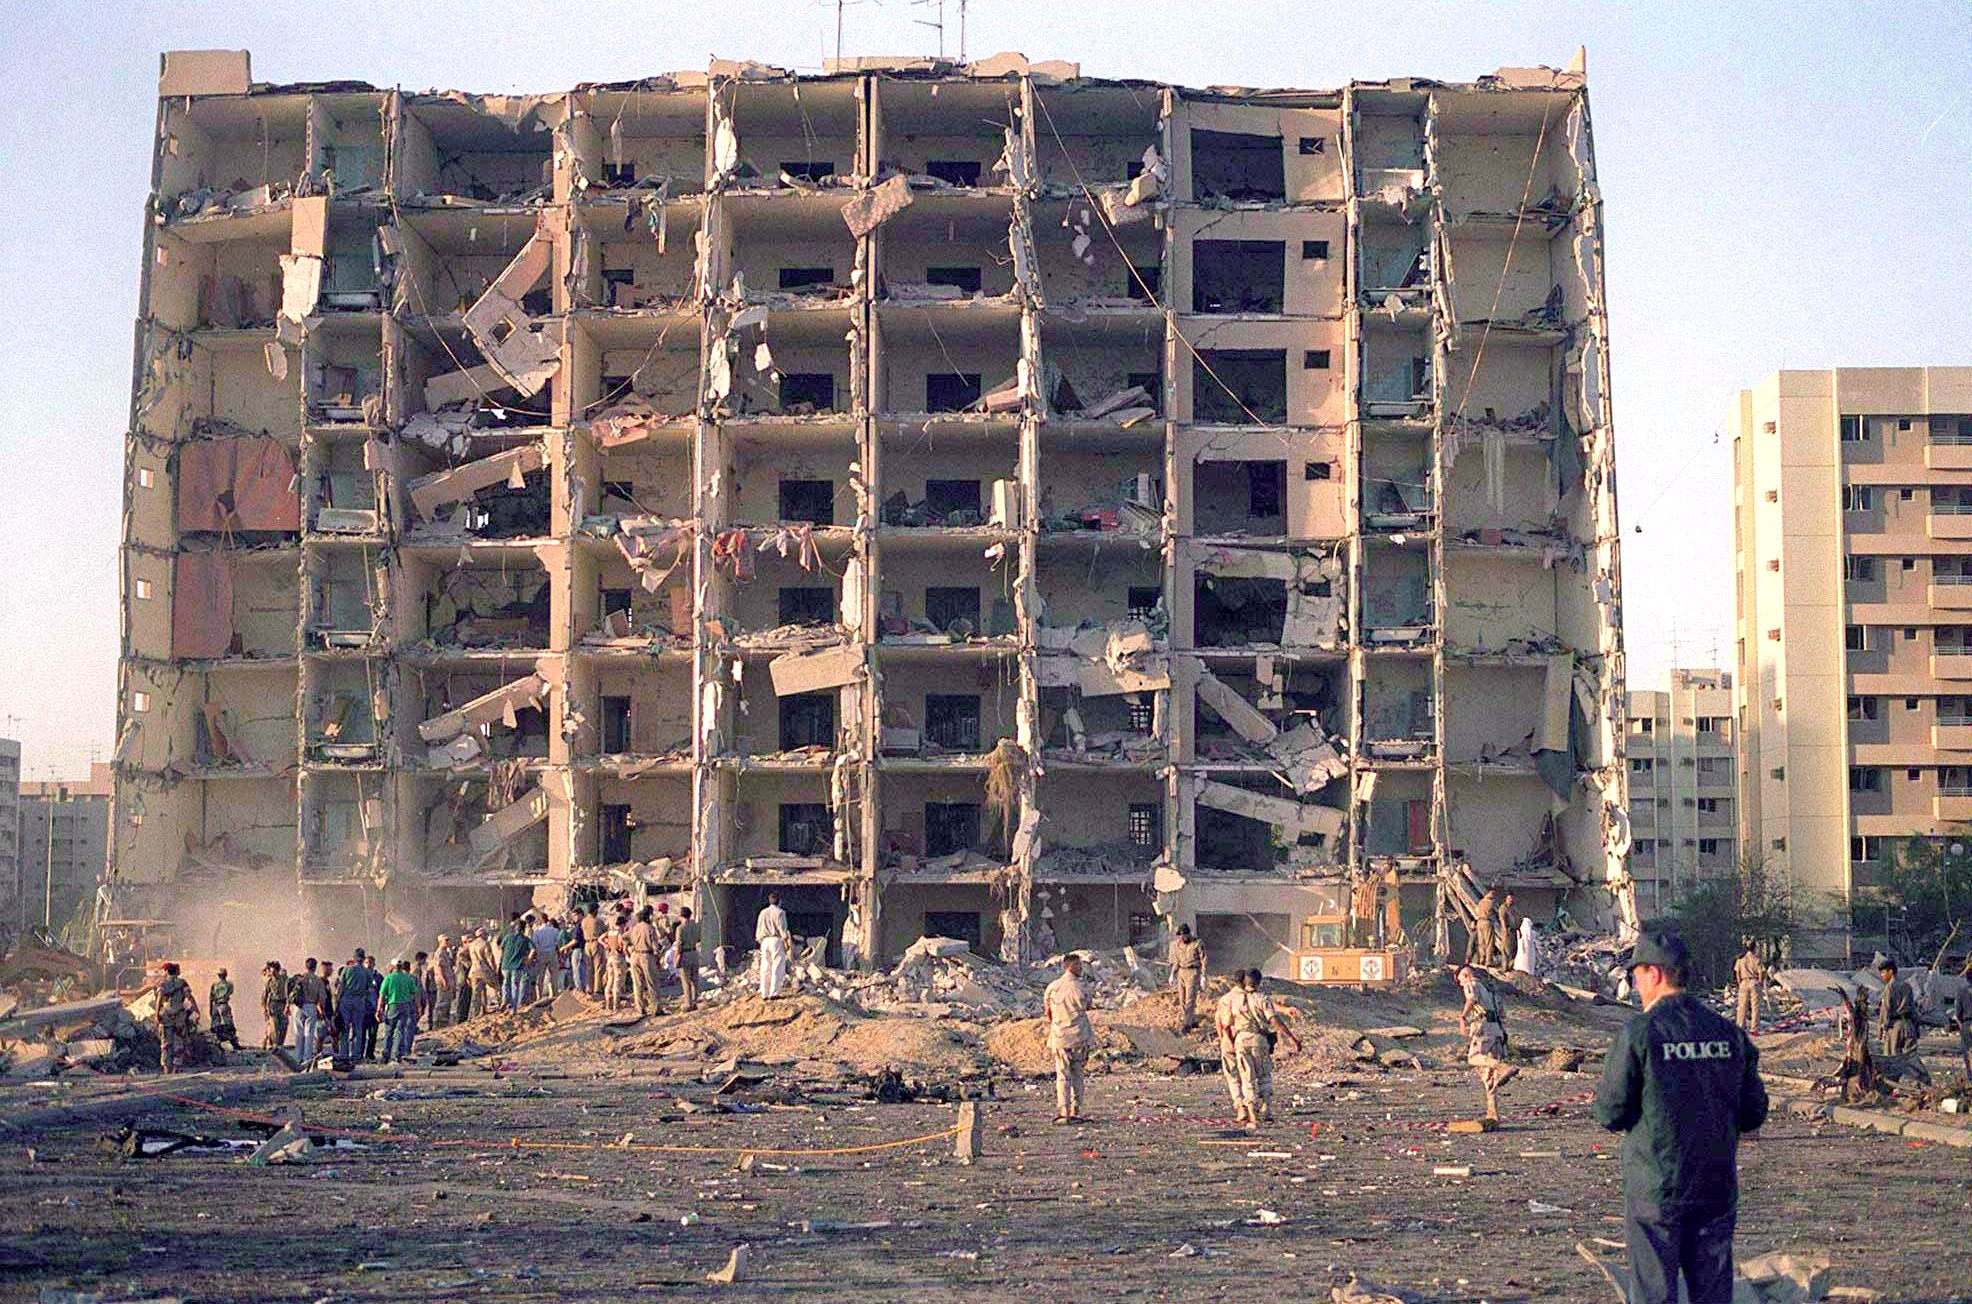 30 years ago in the United States bombed residential area